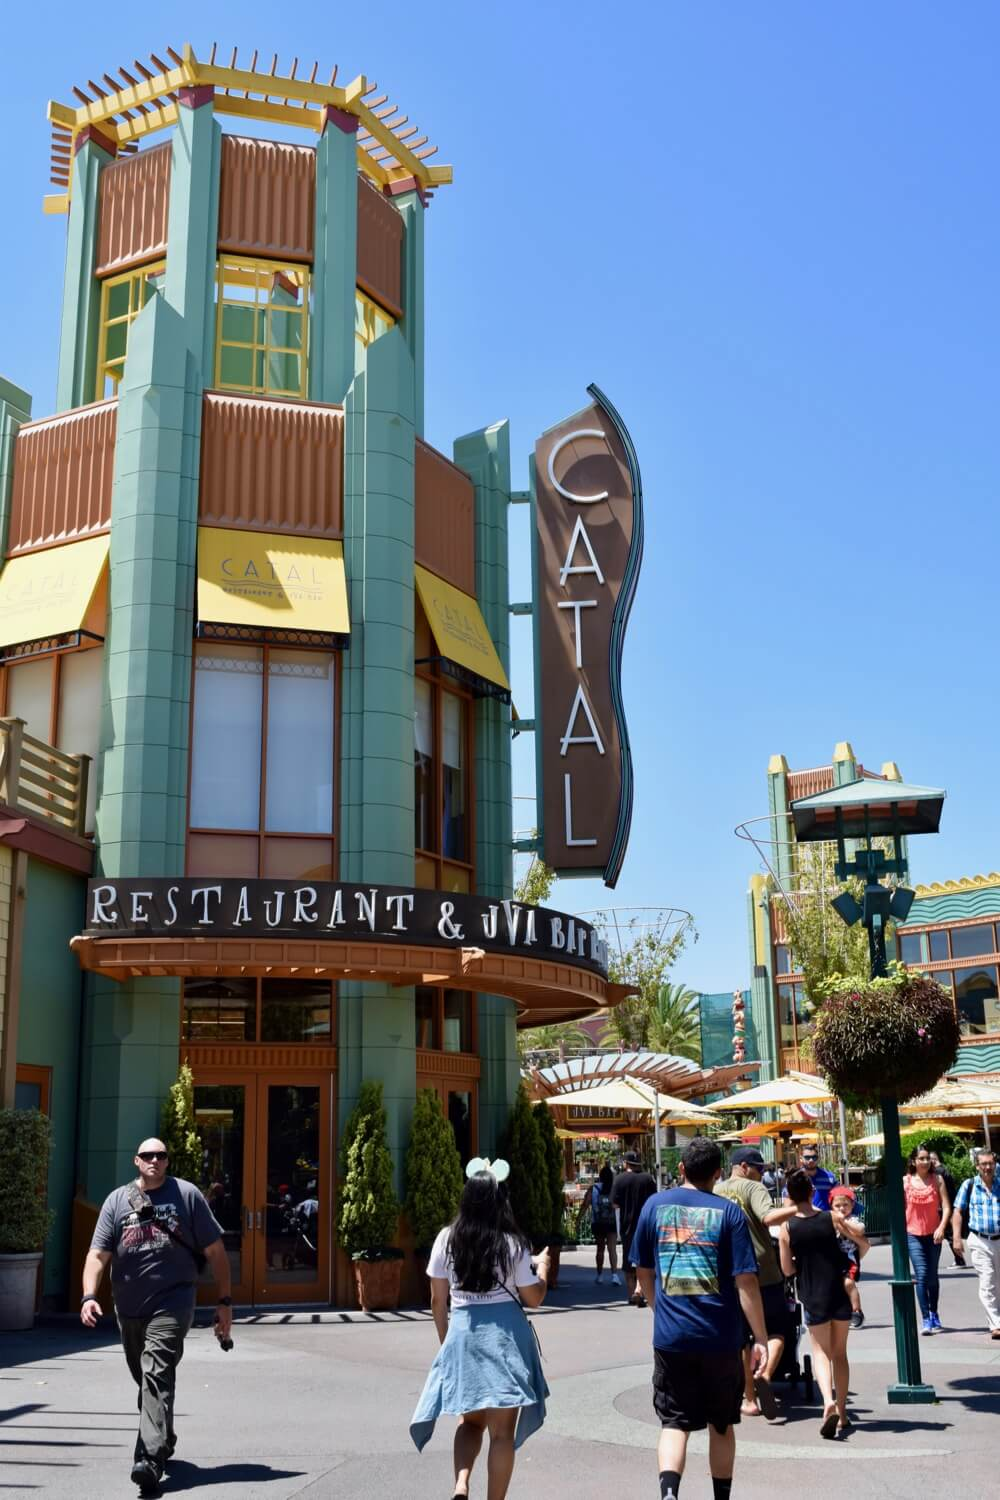 Guide To Downtown Disney at Disneyland - Catal Restaurant